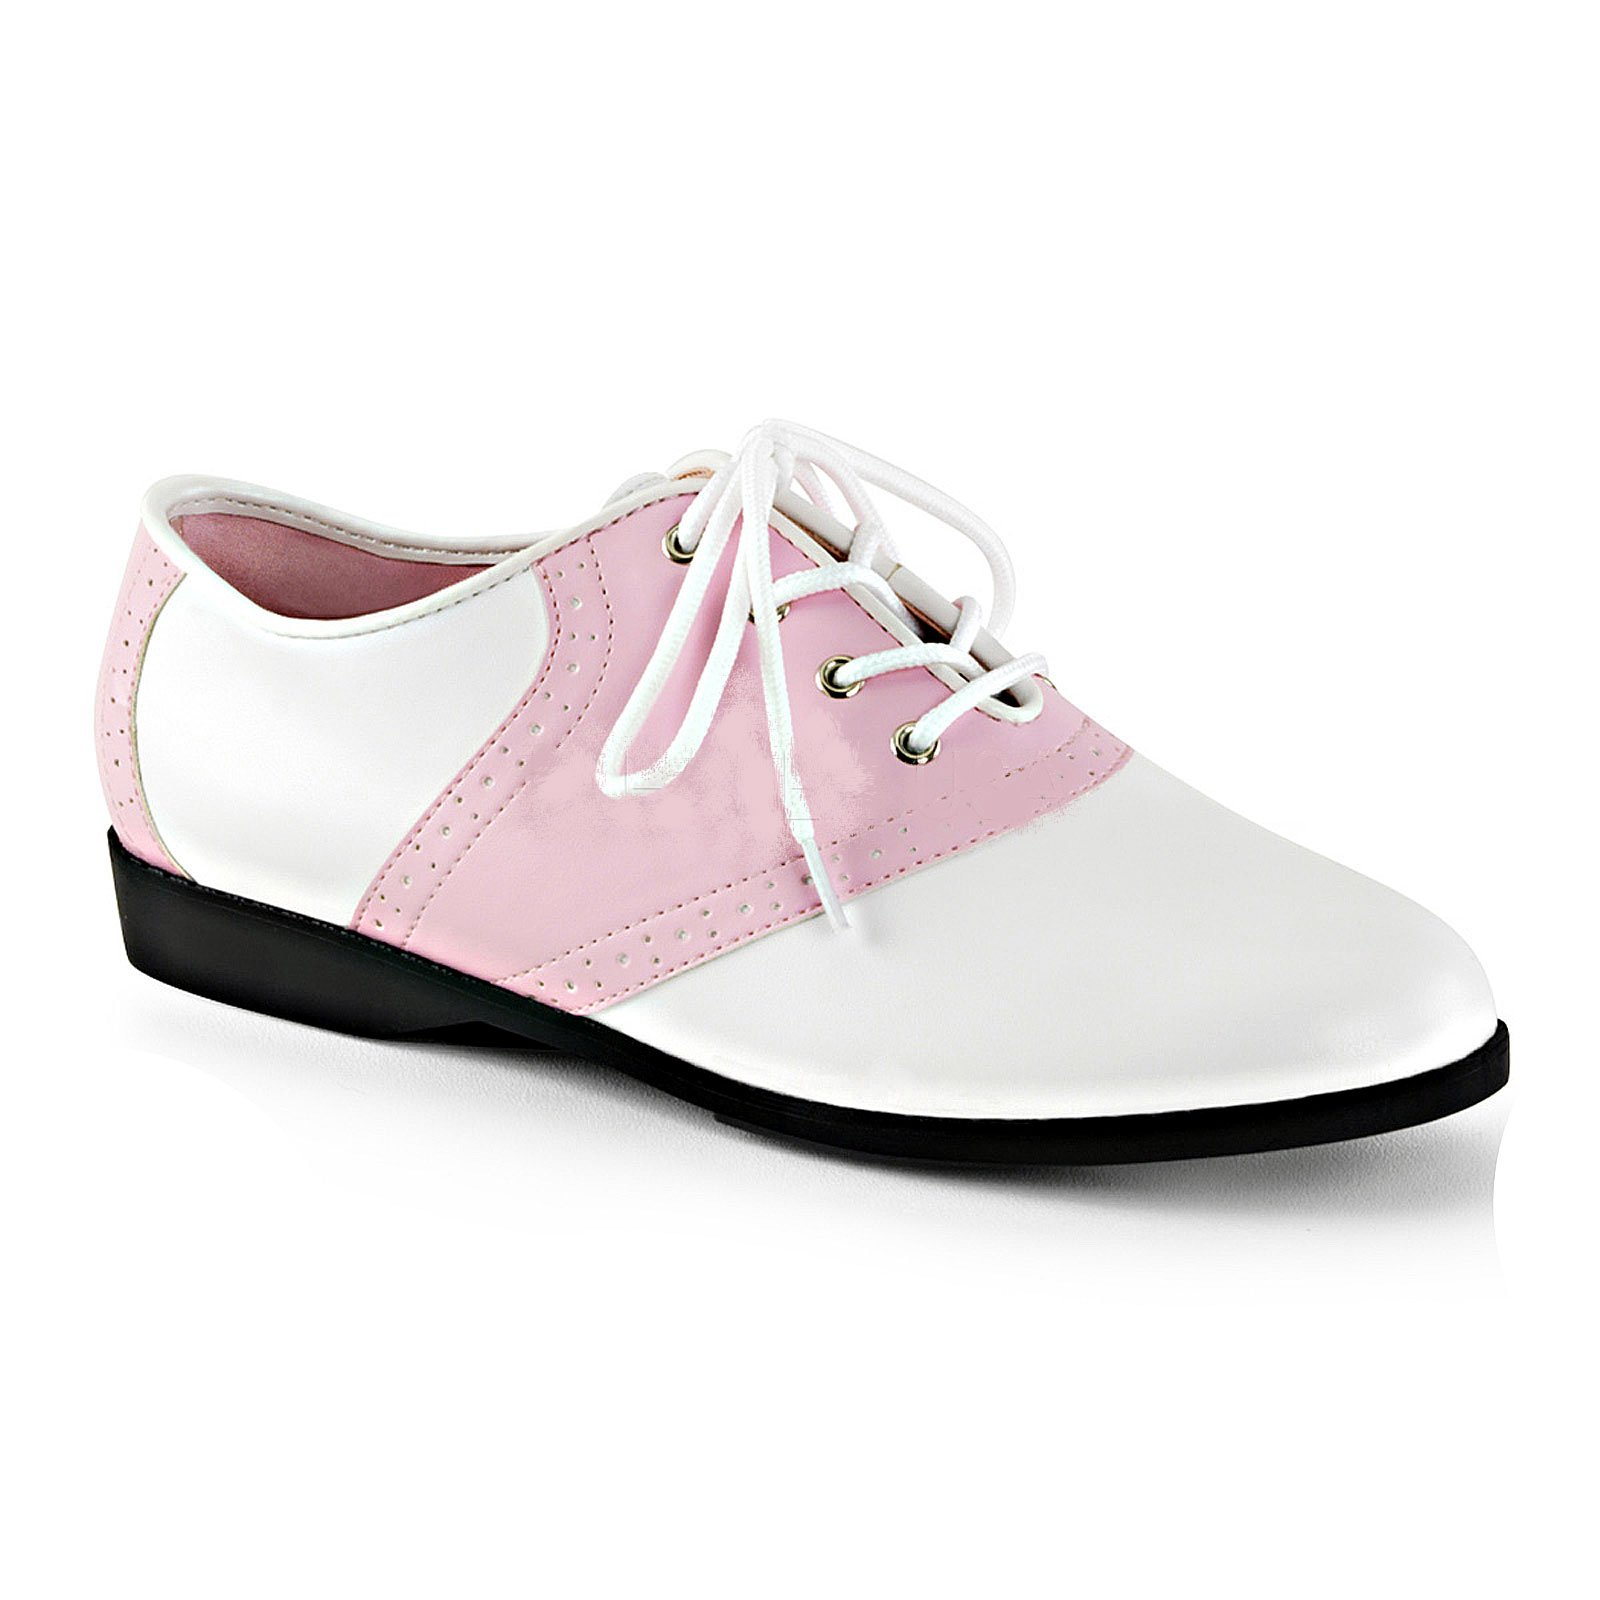 Endless Road 50 (9, White/Pink) Saddle Shoes by Endless Road